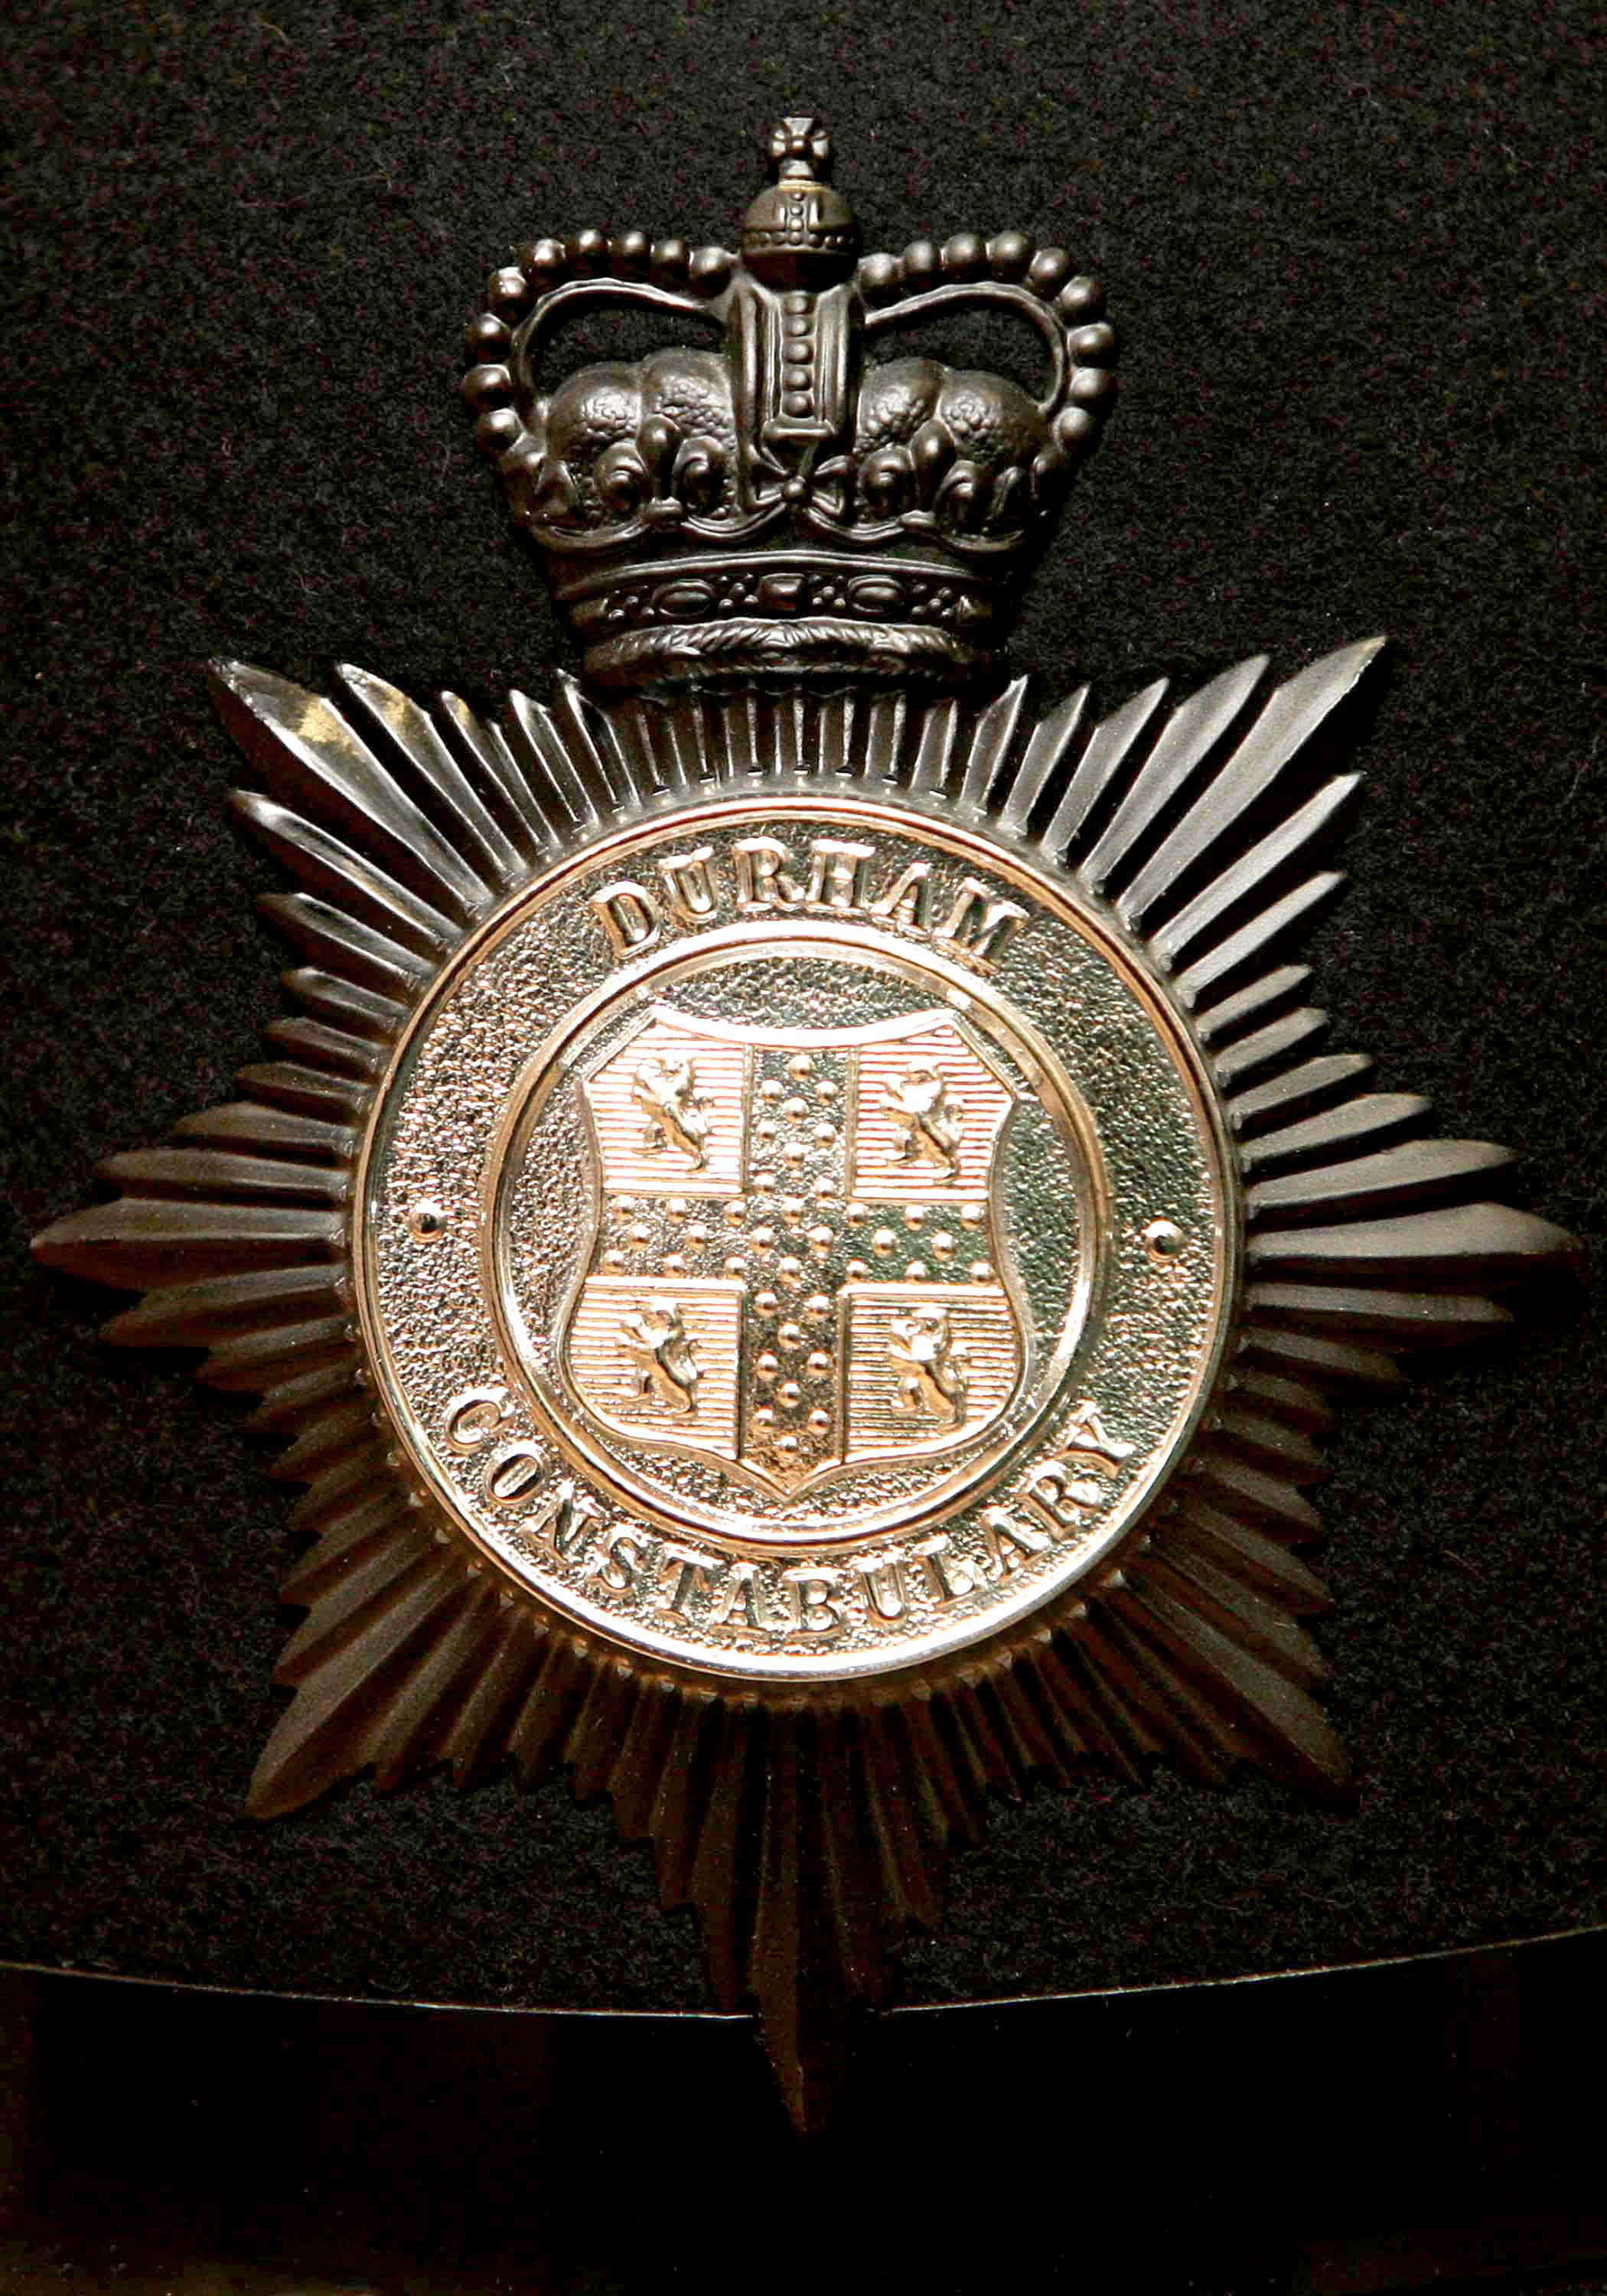 TV STOLEN: Police are investigating a burglary in Heighington